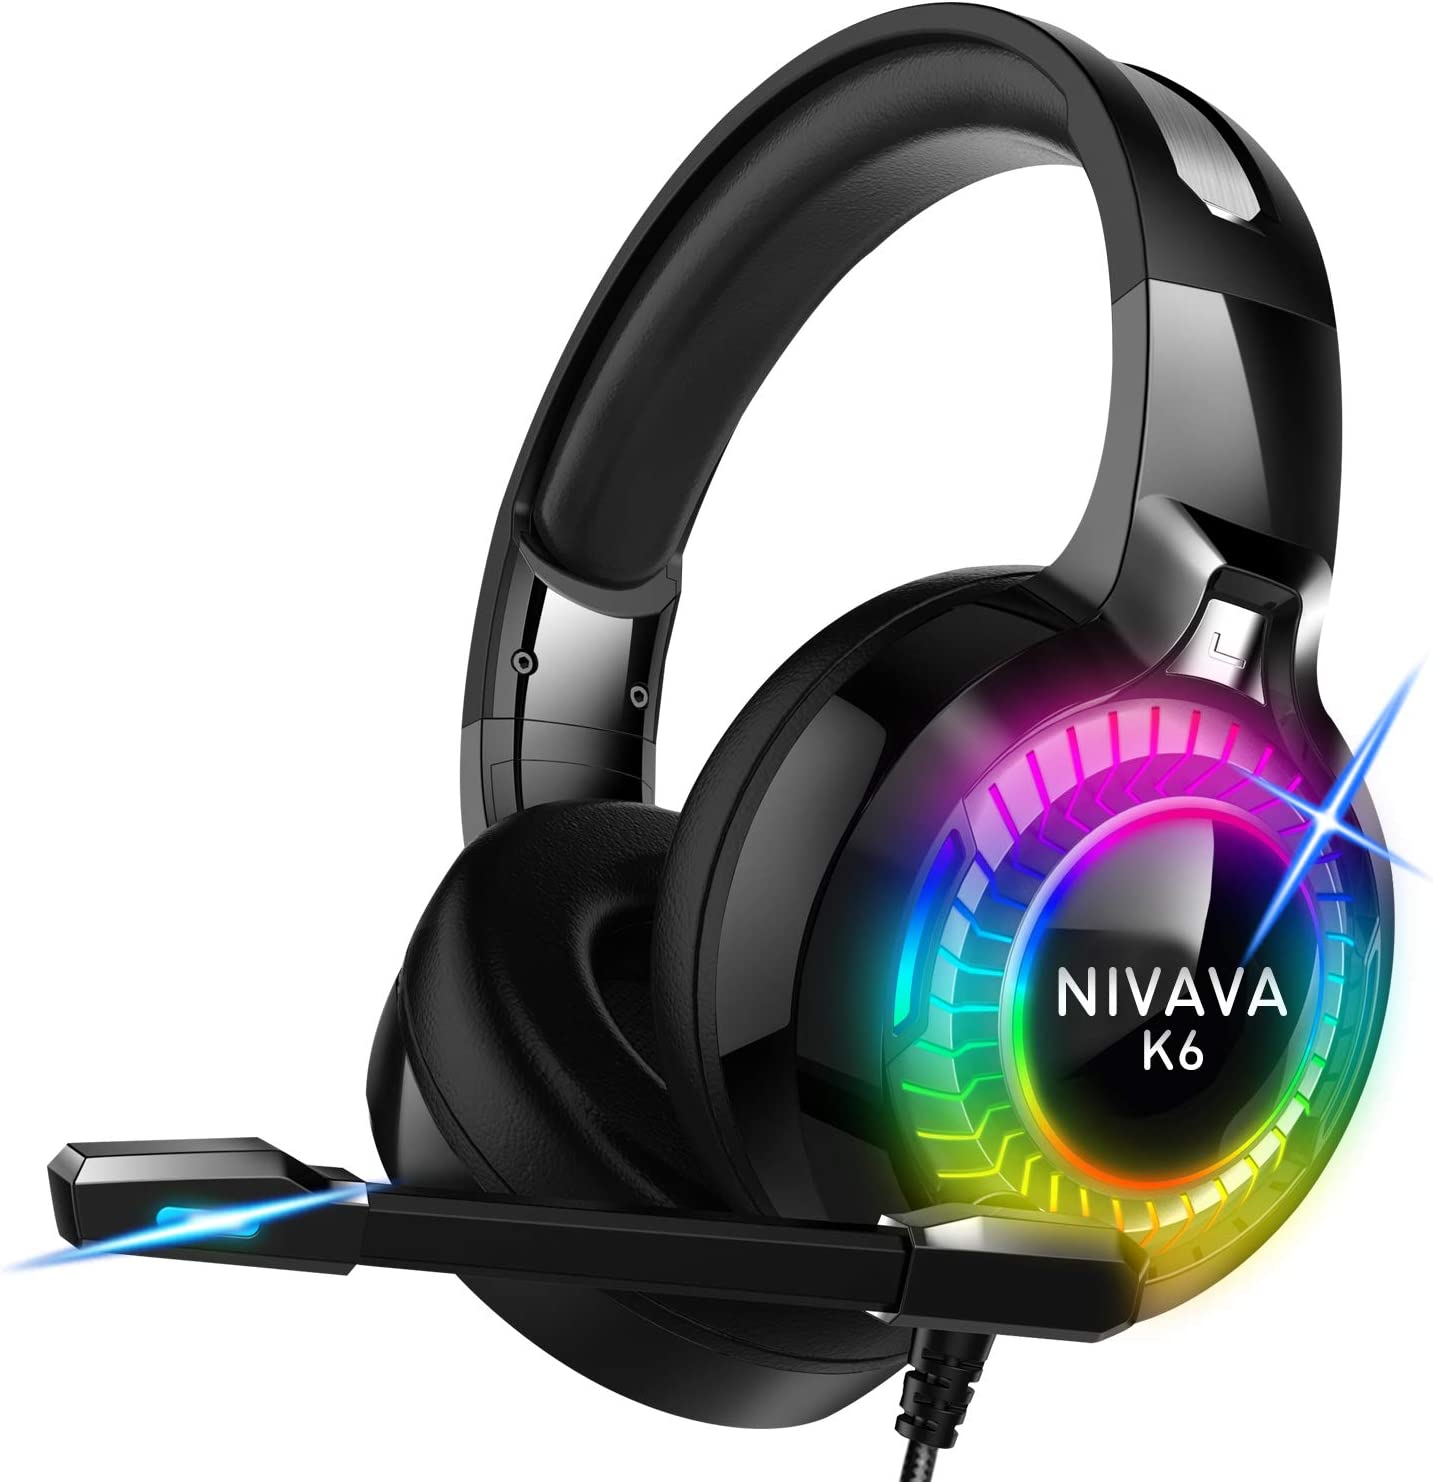 Nivava Gaming Headset for PS4, Xbox One, PC Headphones with Microphone LED Light Mic for Nintendo Switch Playstation Computer, K6(Black)